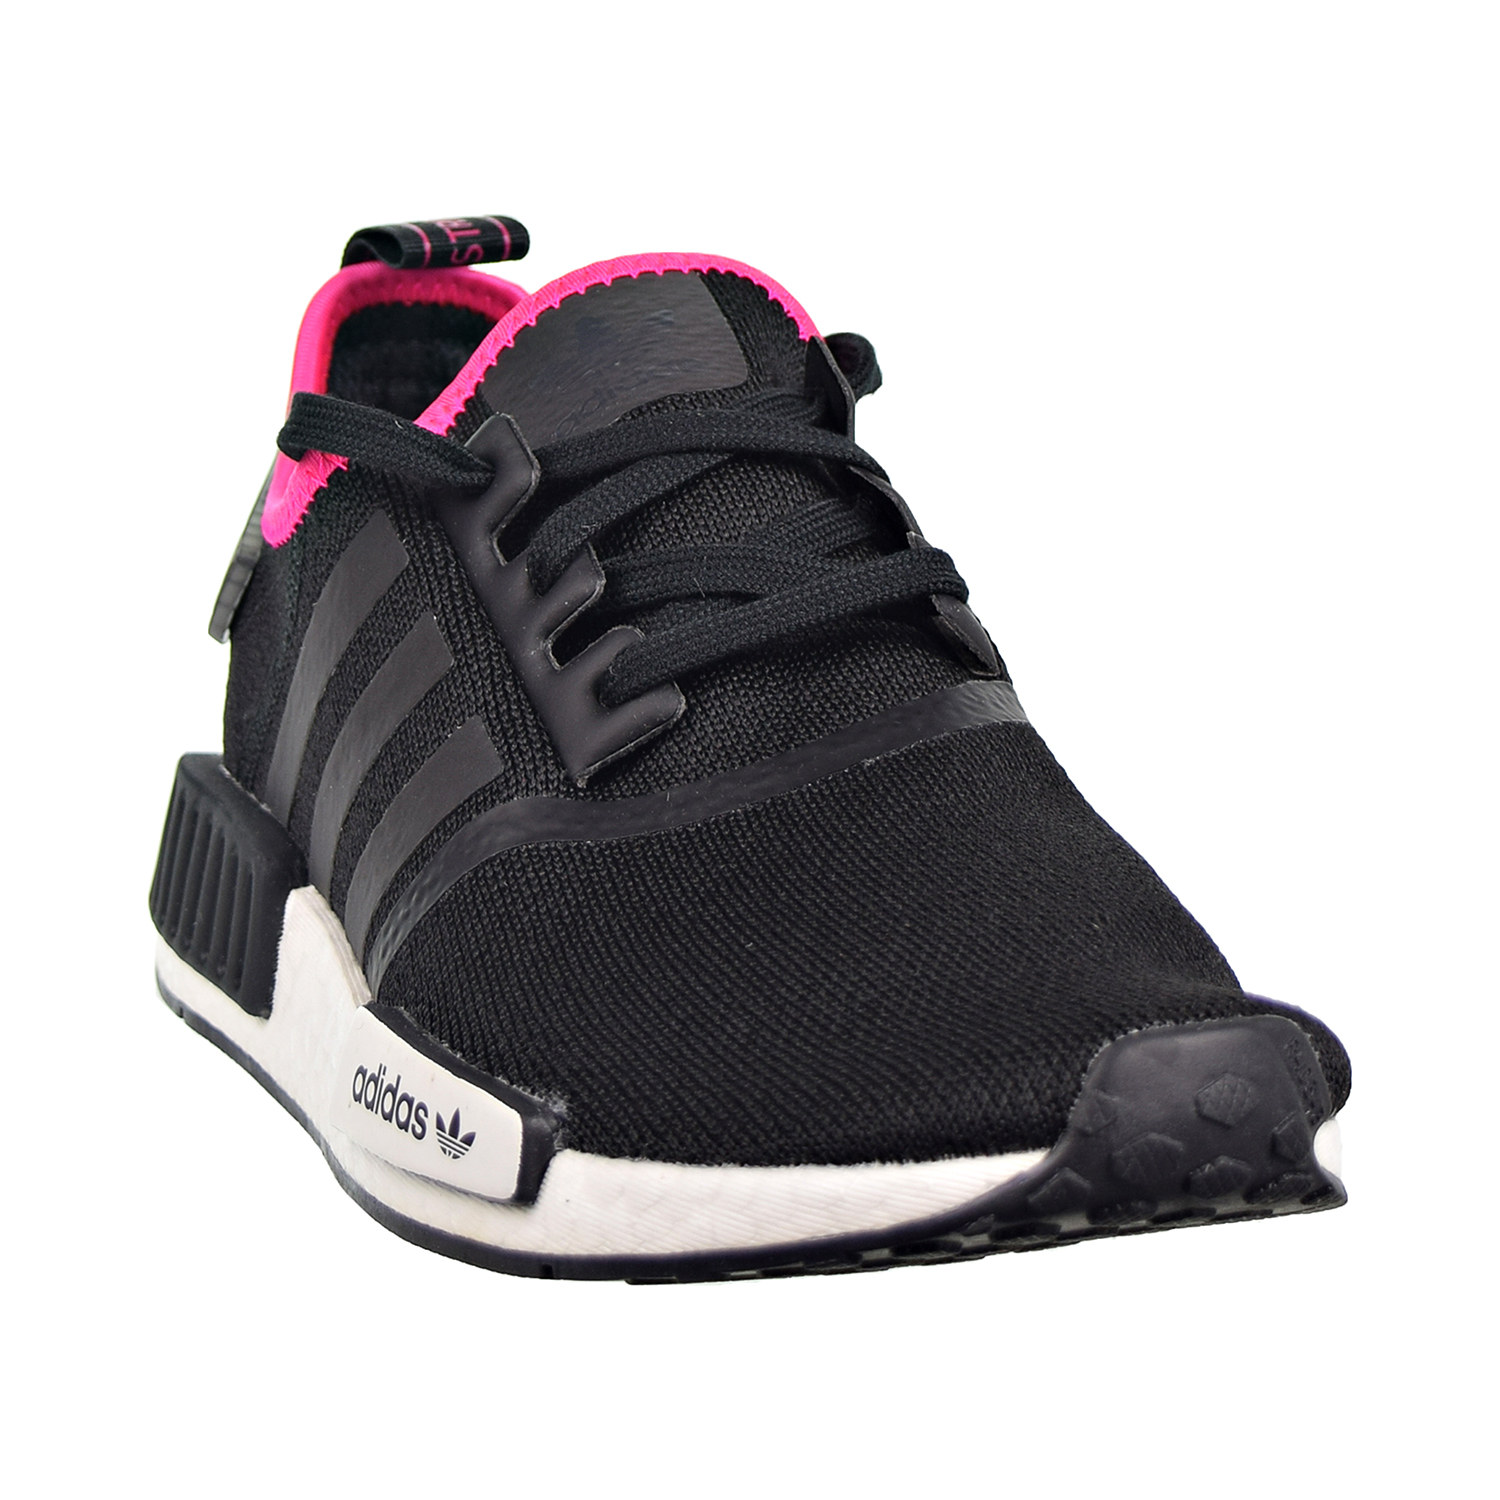 Details about Adidas NMD_R1 Men's Shoes Core Black Shock Pink DB3586